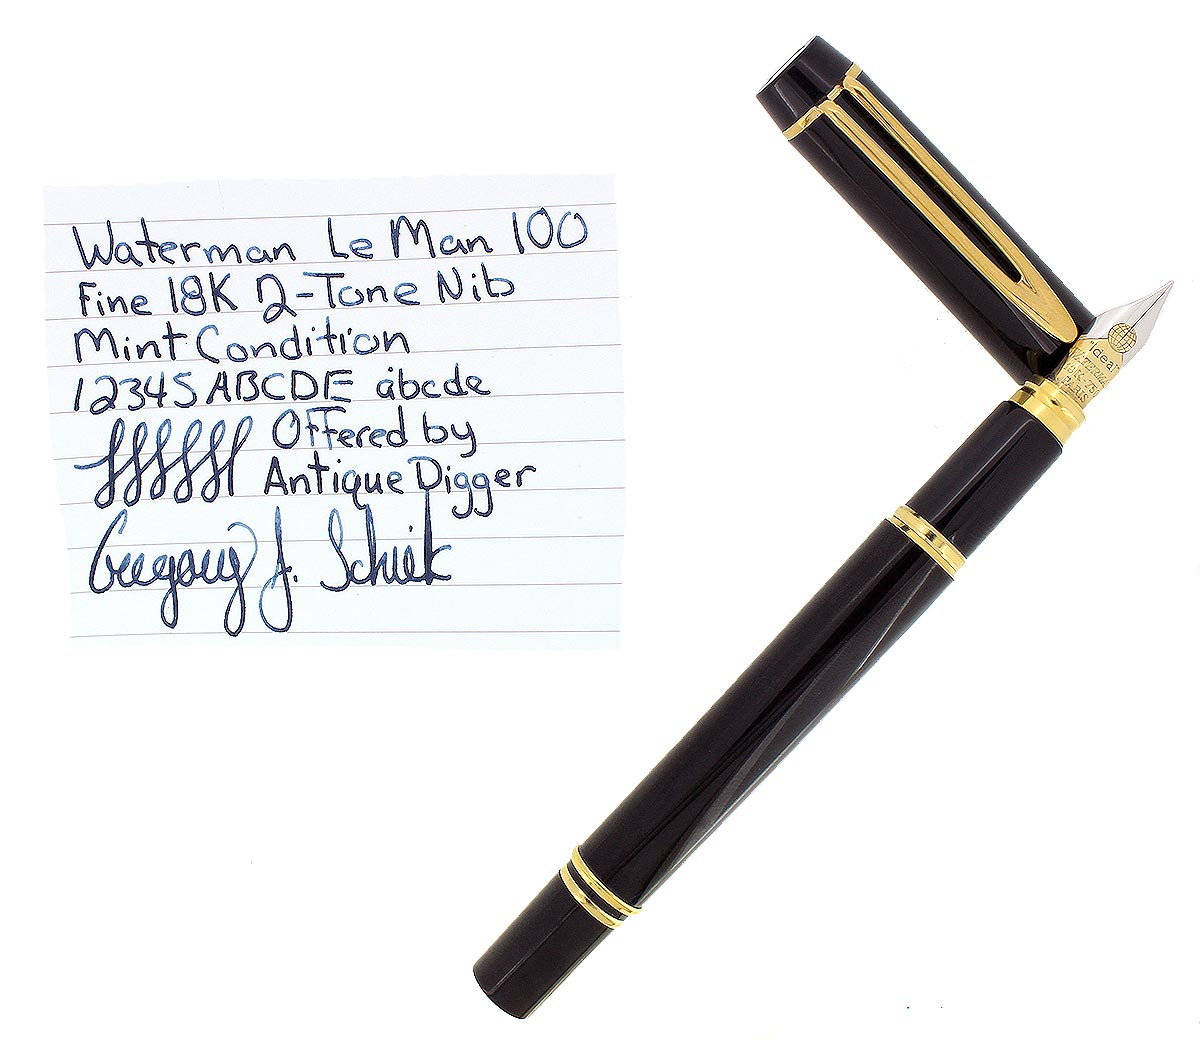 WATERMAN IDEAL LE MAN 100 FOUNTAIN PEN FINE GLOBE NIB MINT IN BOX OFFERED BY ANTIQUE DIGGER